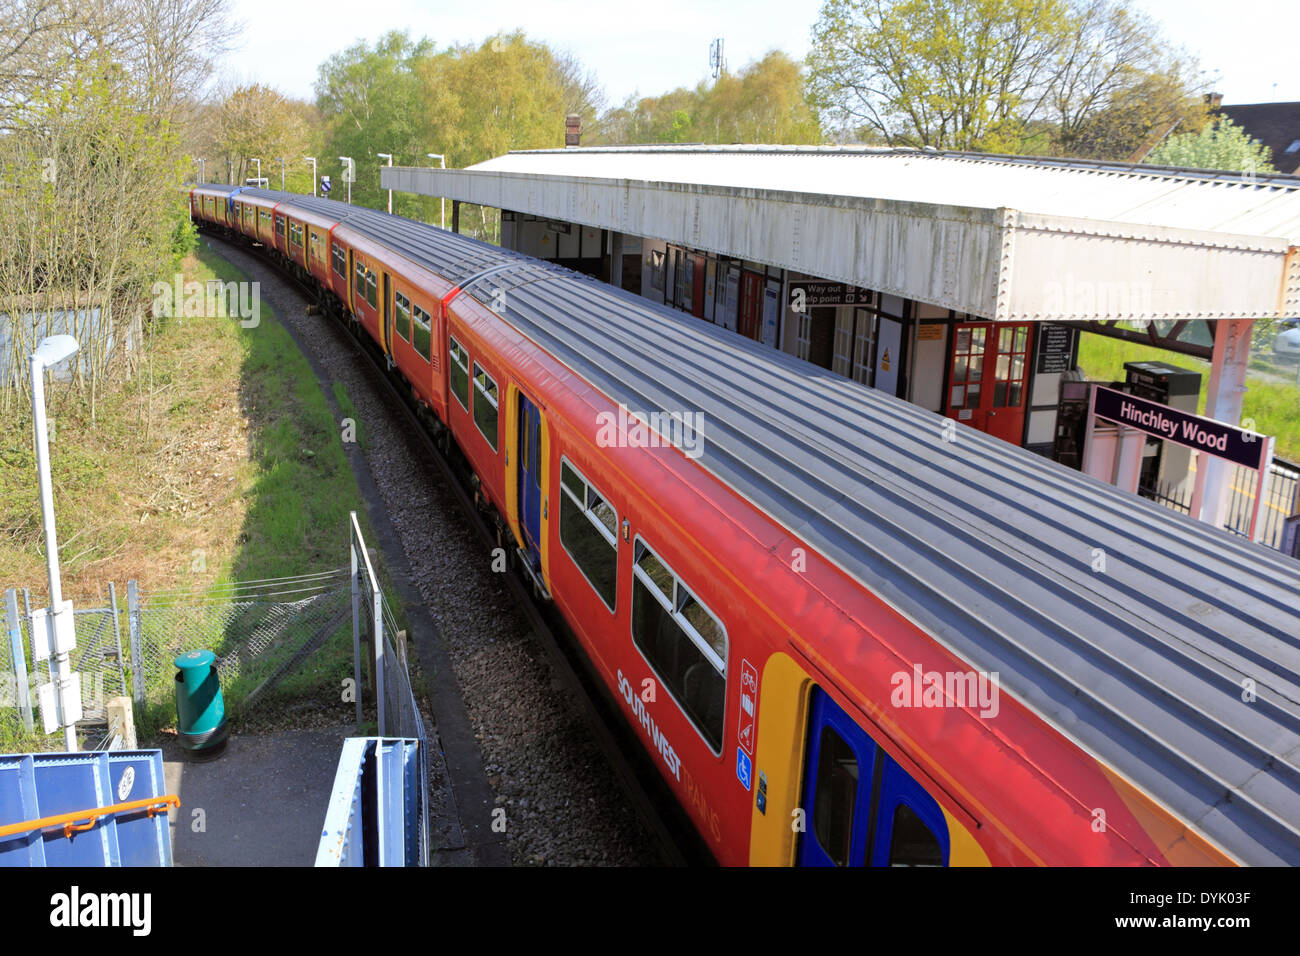 Railway station Hinchley Wood, Surrey, England, UK. - Stock Image